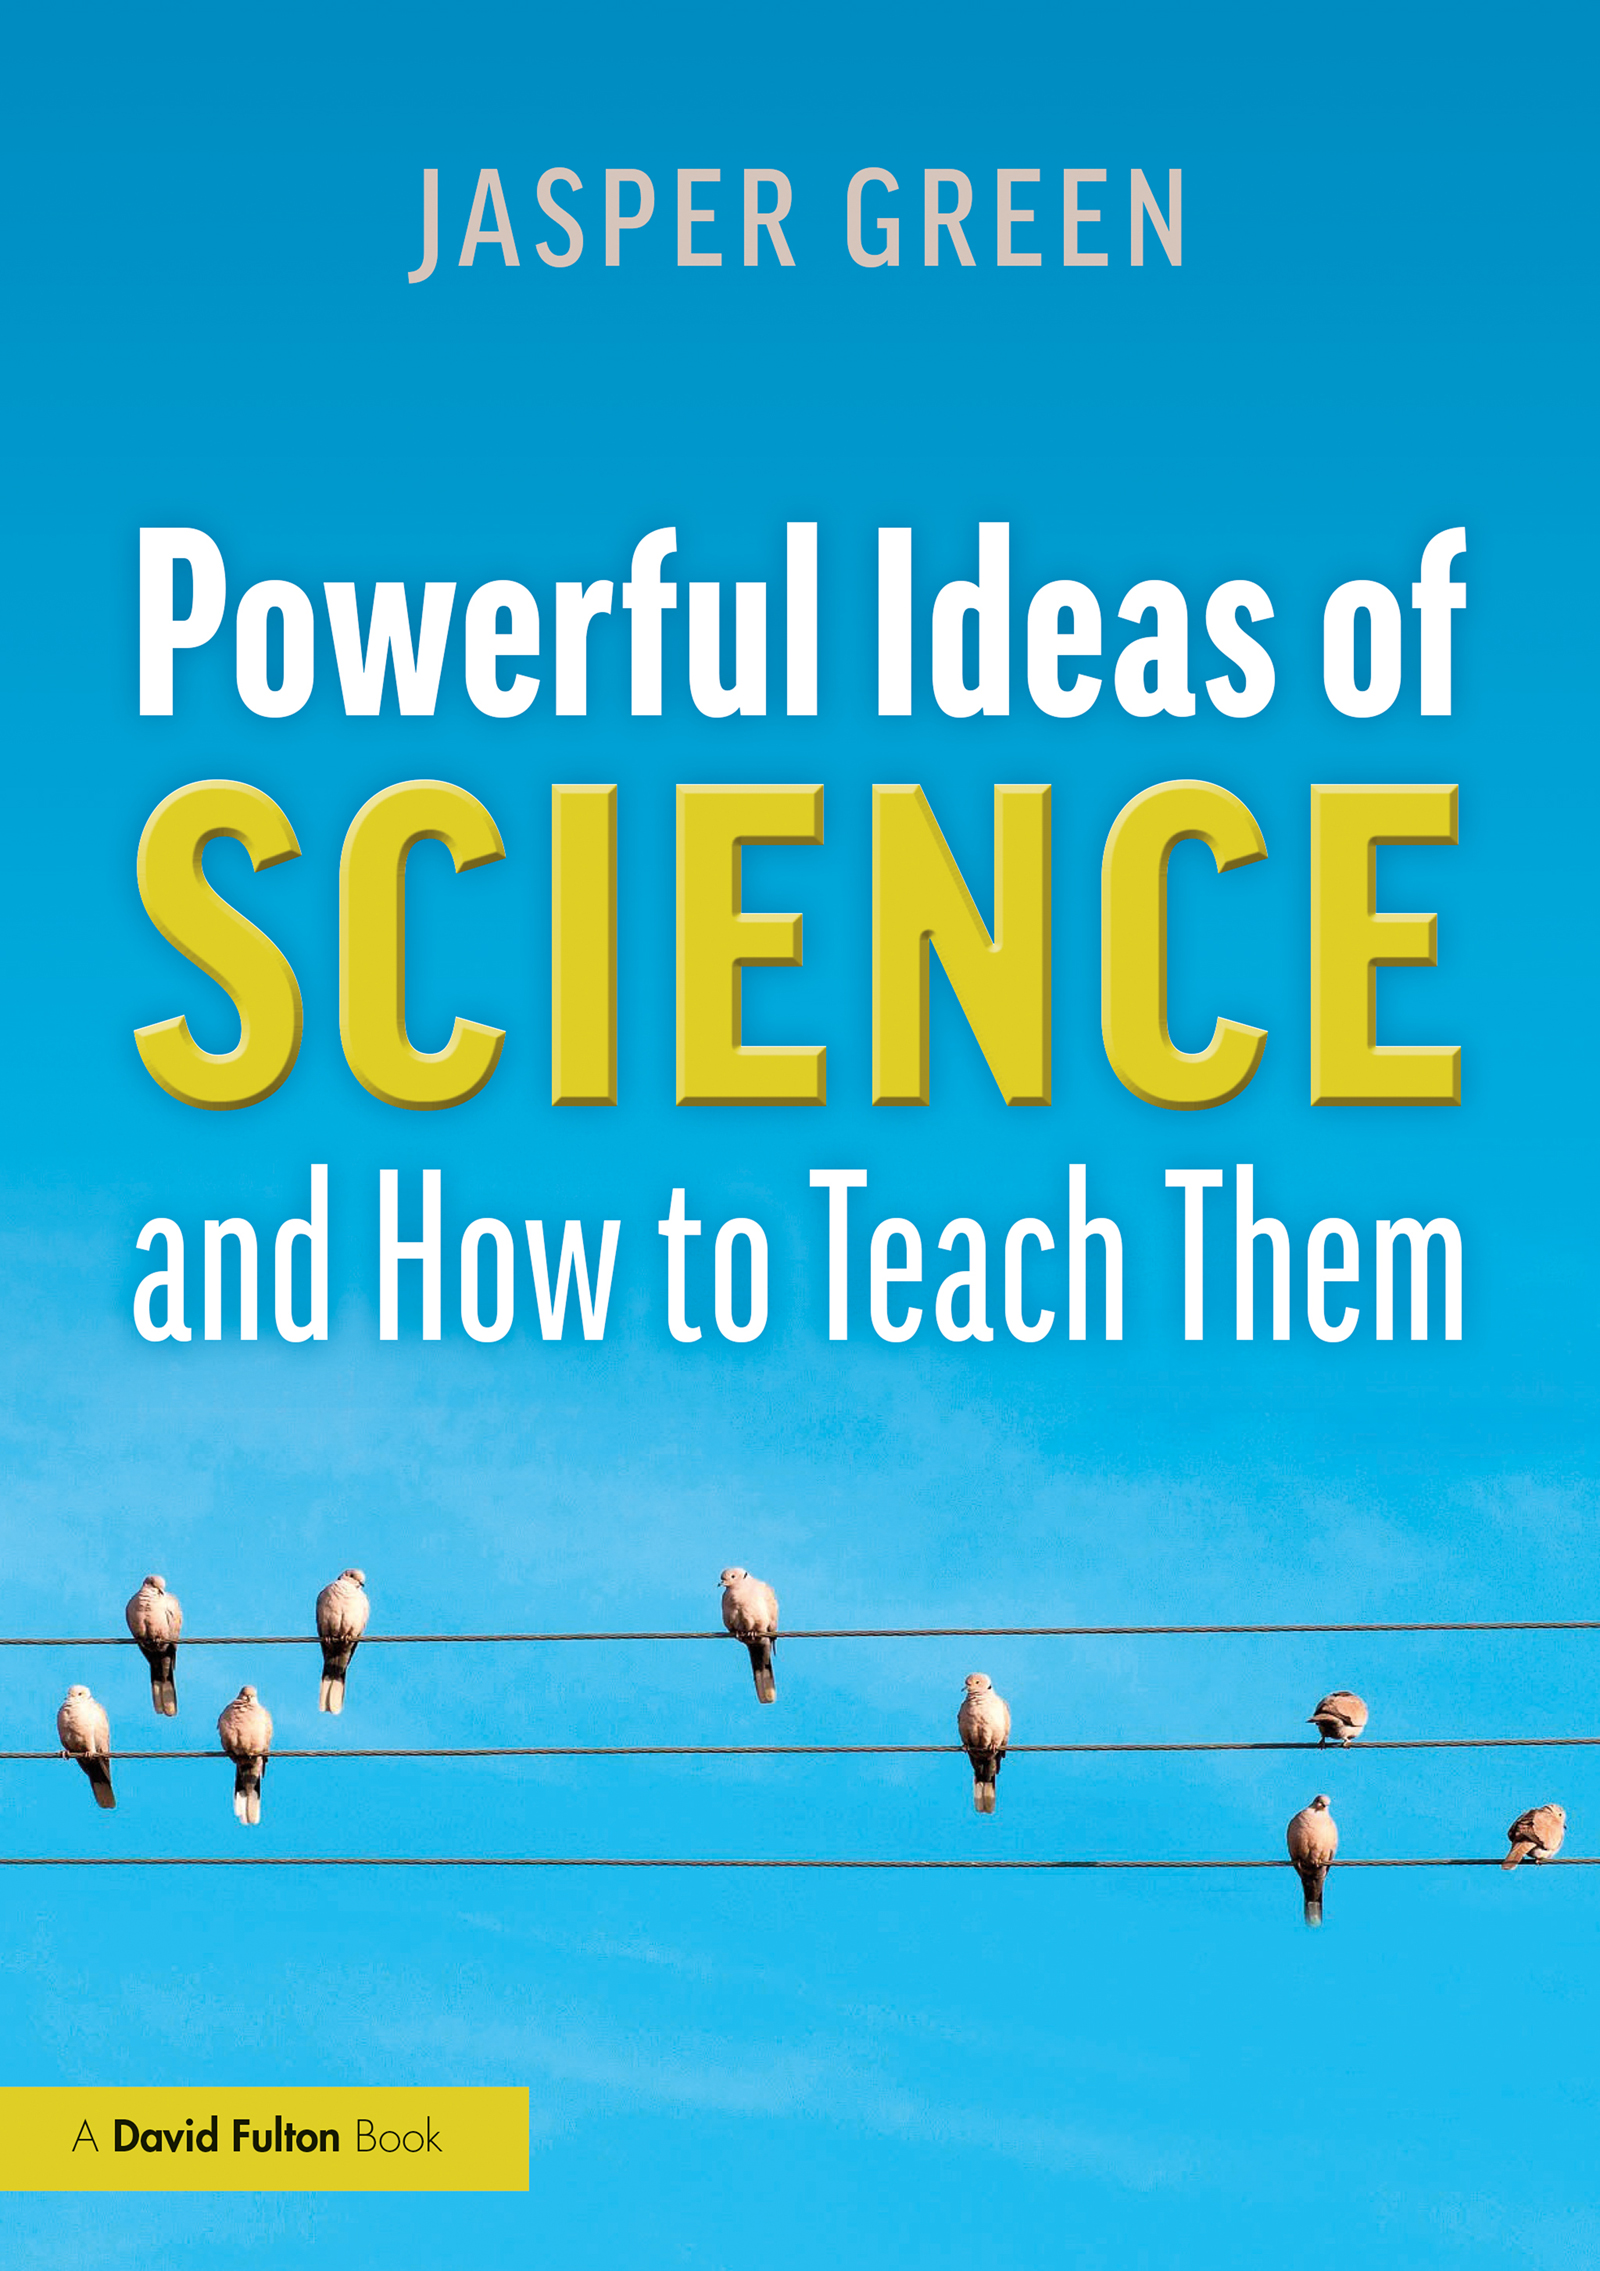 Powerful Ideas of Science and How to Teach Them